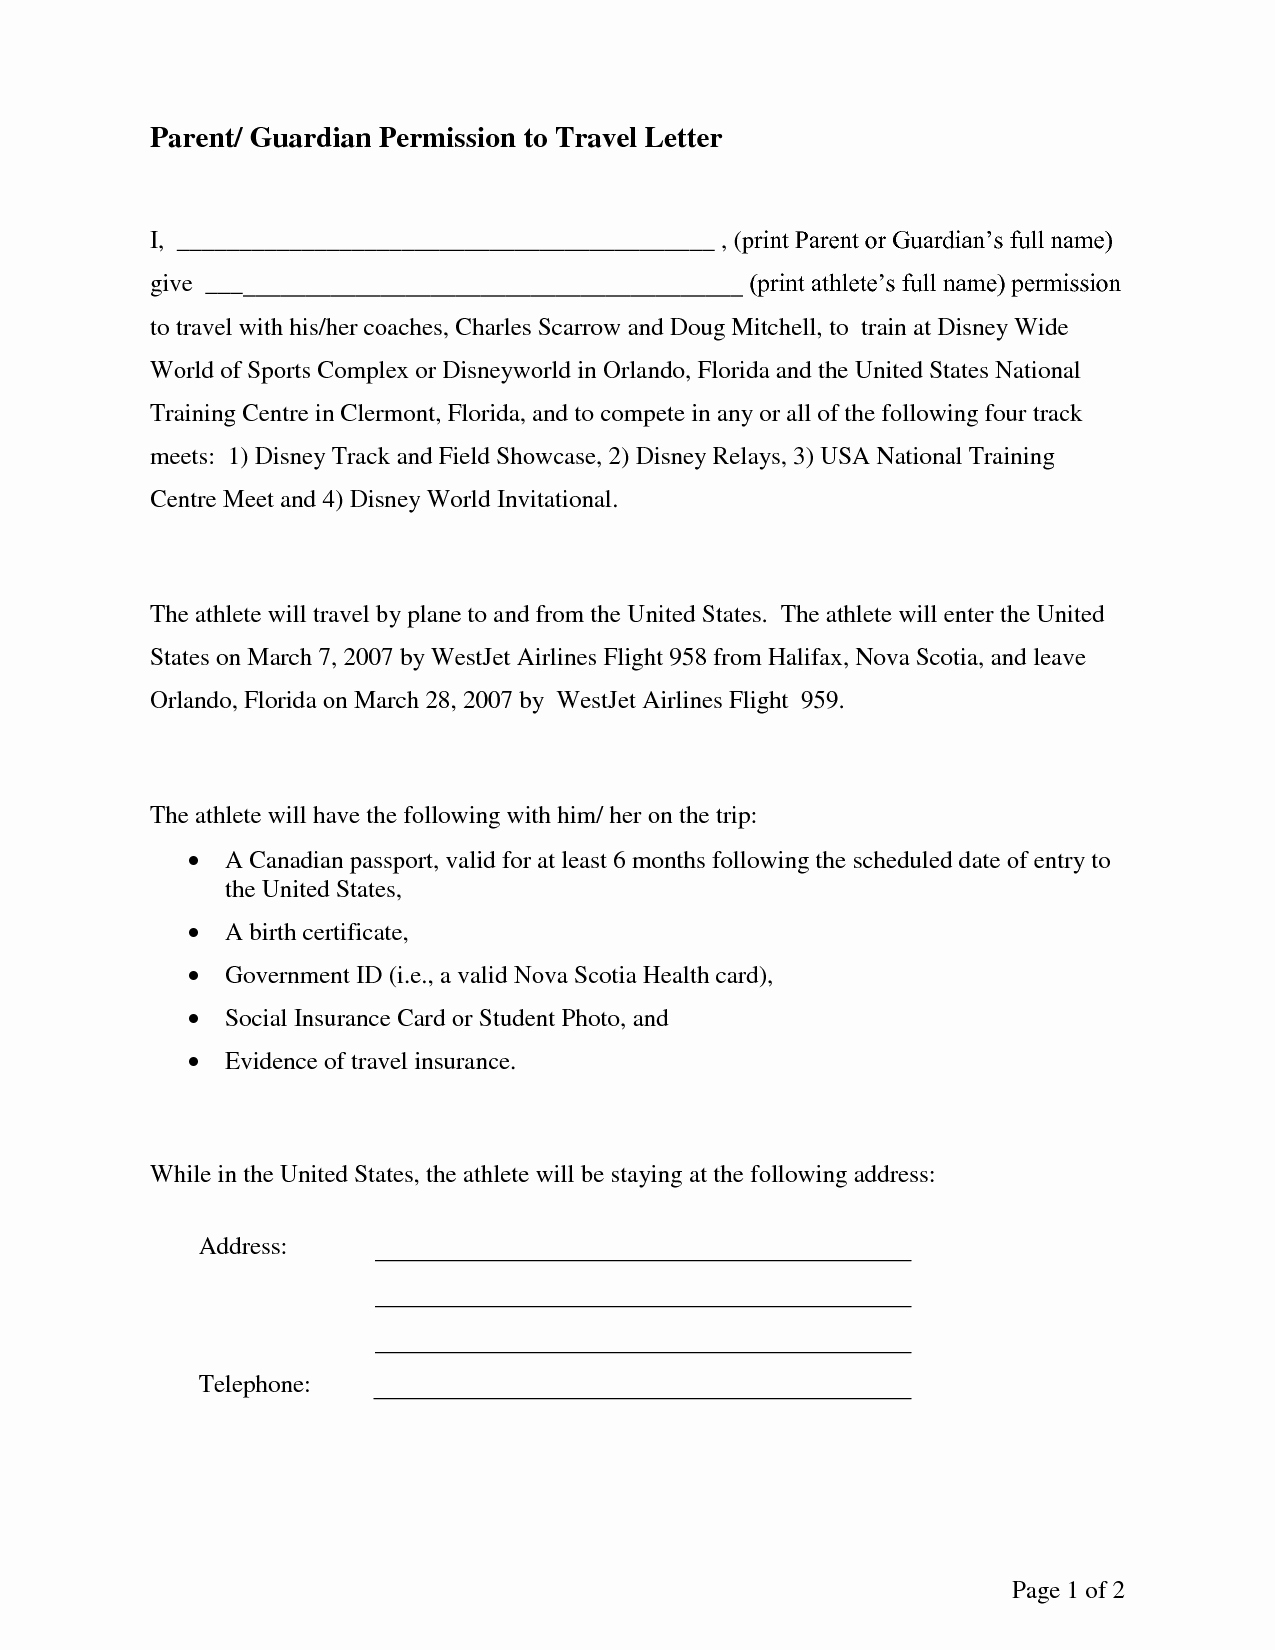 Letter Of Permission to Travel with Grandchildren Template Lovely Parental Consent Permission Letter Sample